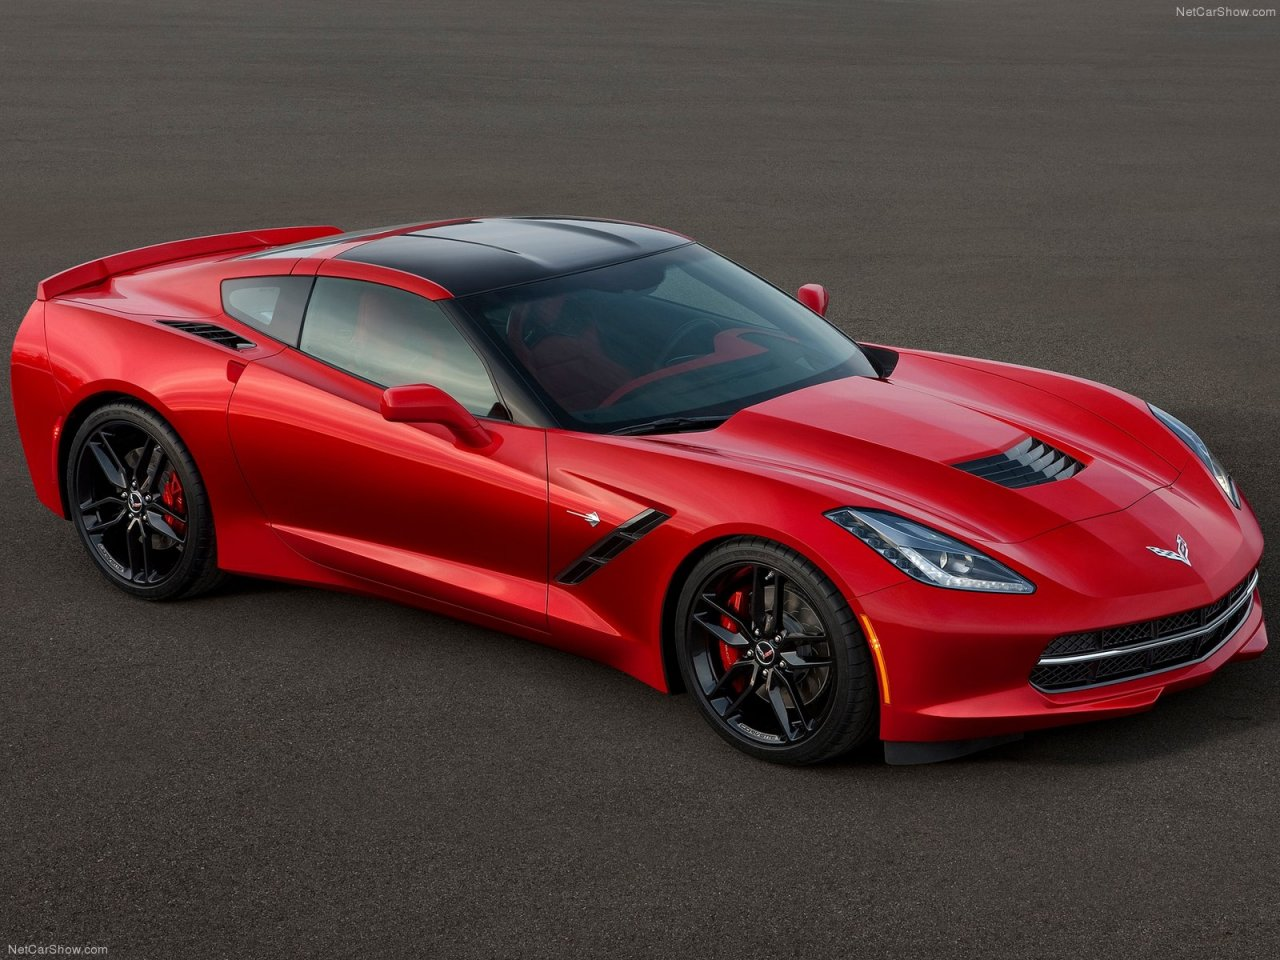 Corvette Stingray Top Speed >> Chevrolet Corvette Stingray C7 Laptimes Specs Performance Data